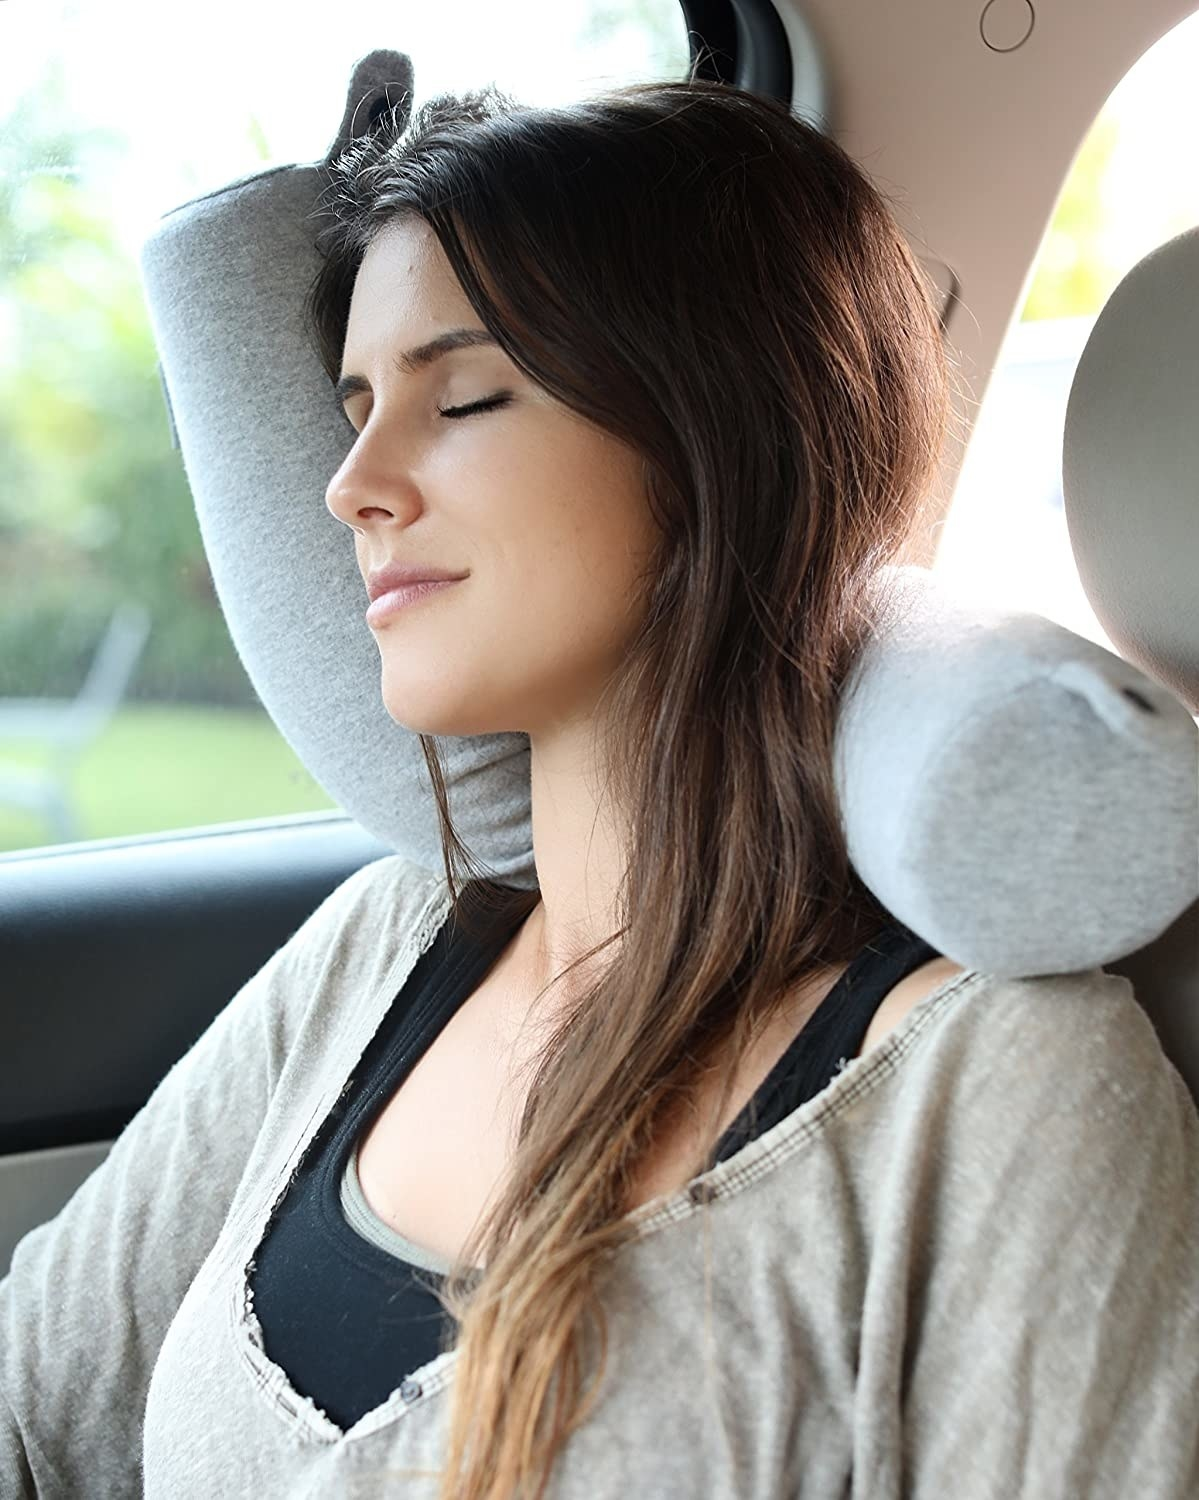 A person sleeping in a car while using the twistable memory foam pillow.